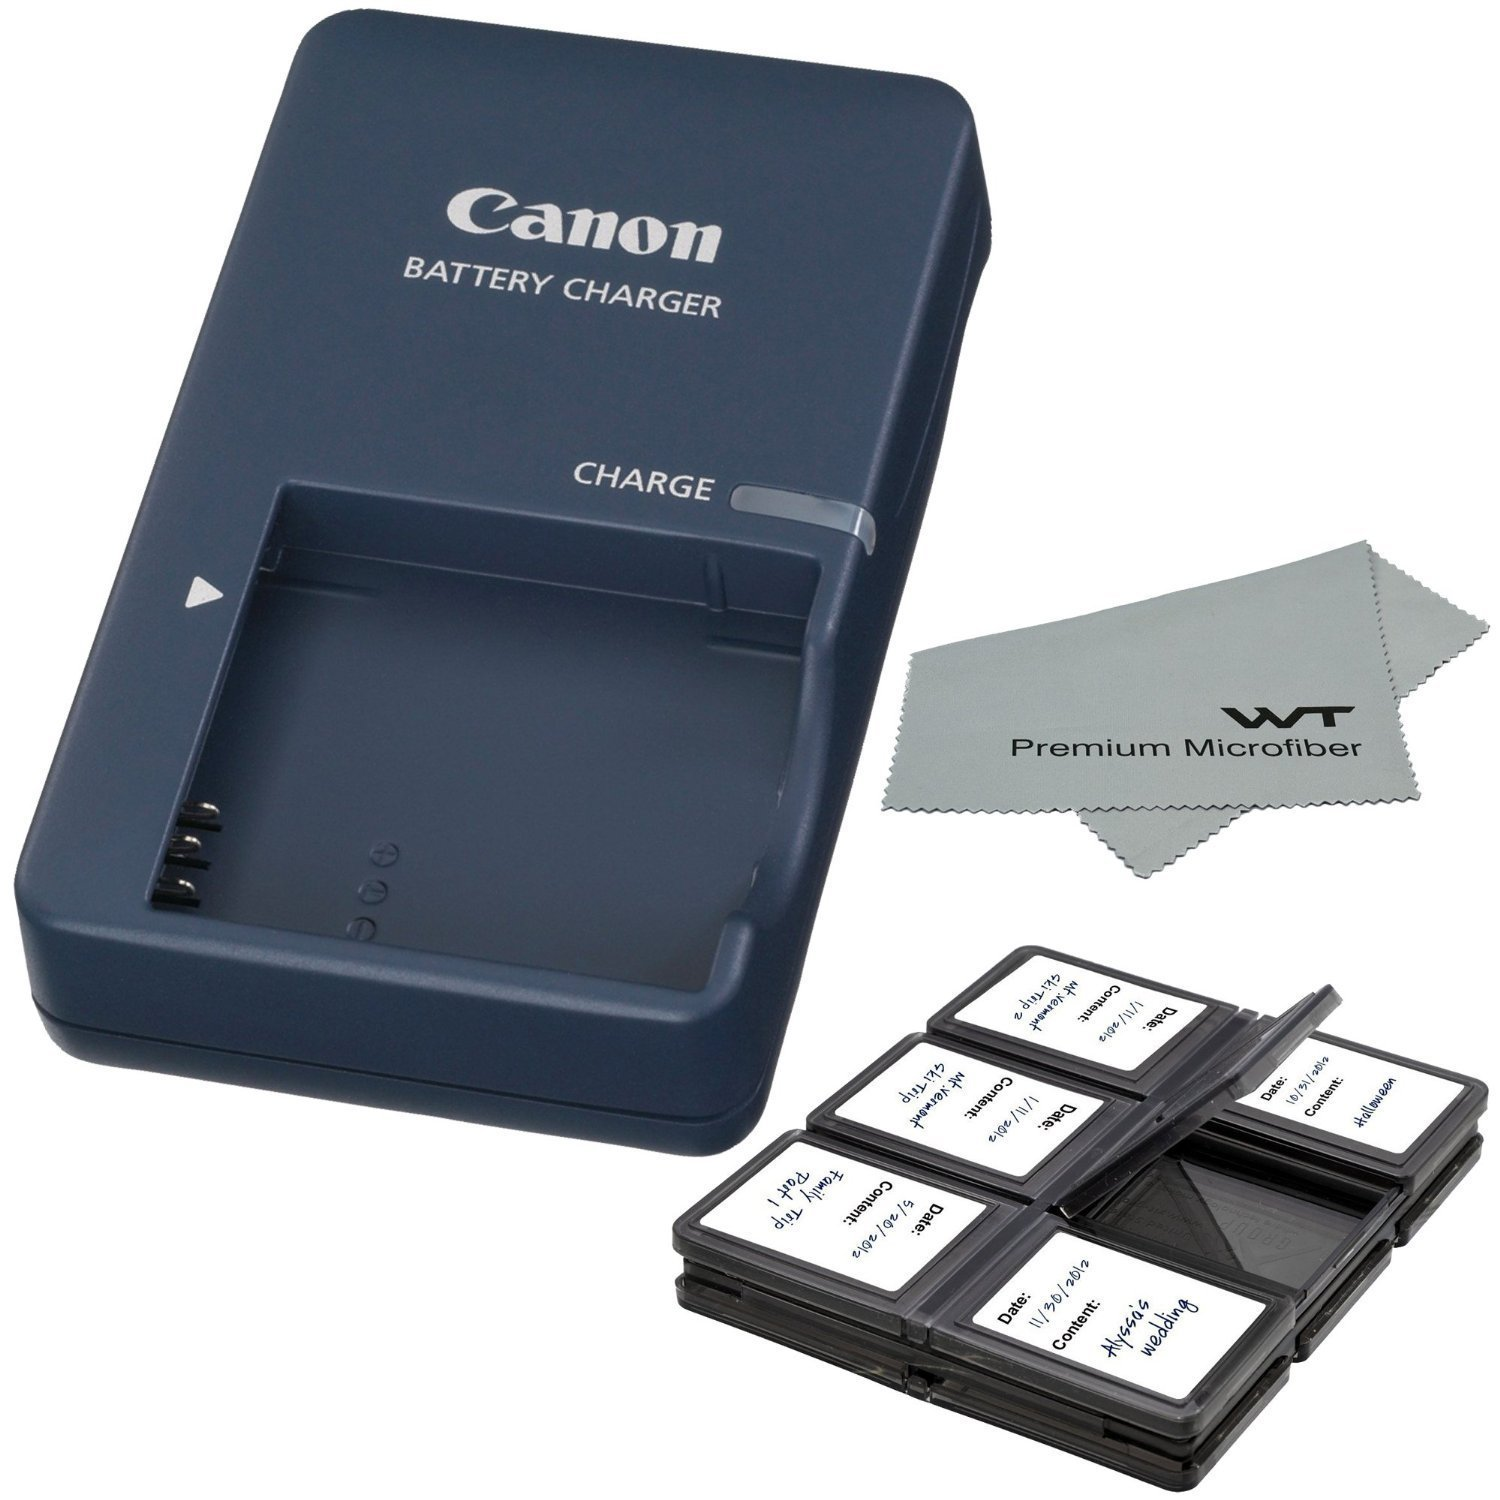 Canon CB-2LV Charger for Canon NB-4L Li-ion Battery compatible with Canon PowerShot SD40 SD30 SD200 SD300 SD400 SD430 SD450 SD600 SD630 + Bonus Items! by Canon